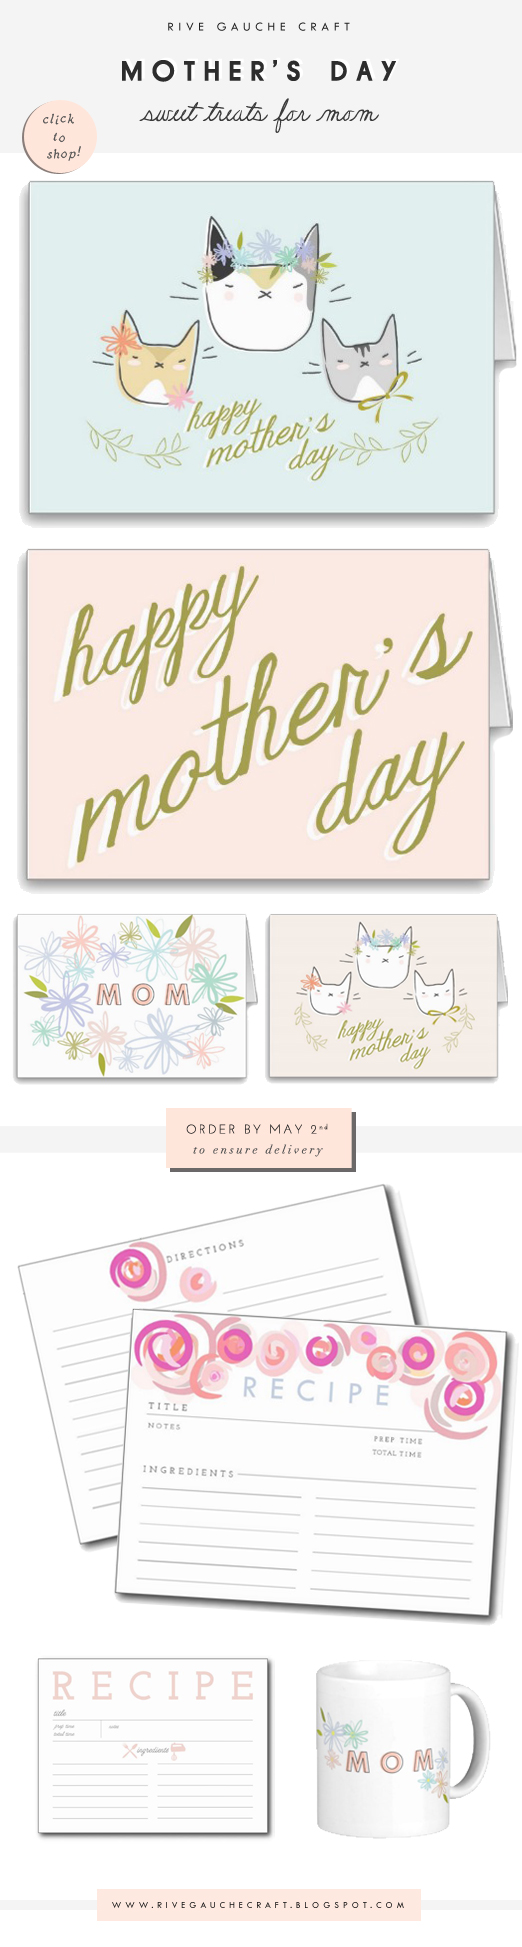 Illustrated Greeting cards and pretty gifts for Mom on Mother's Day